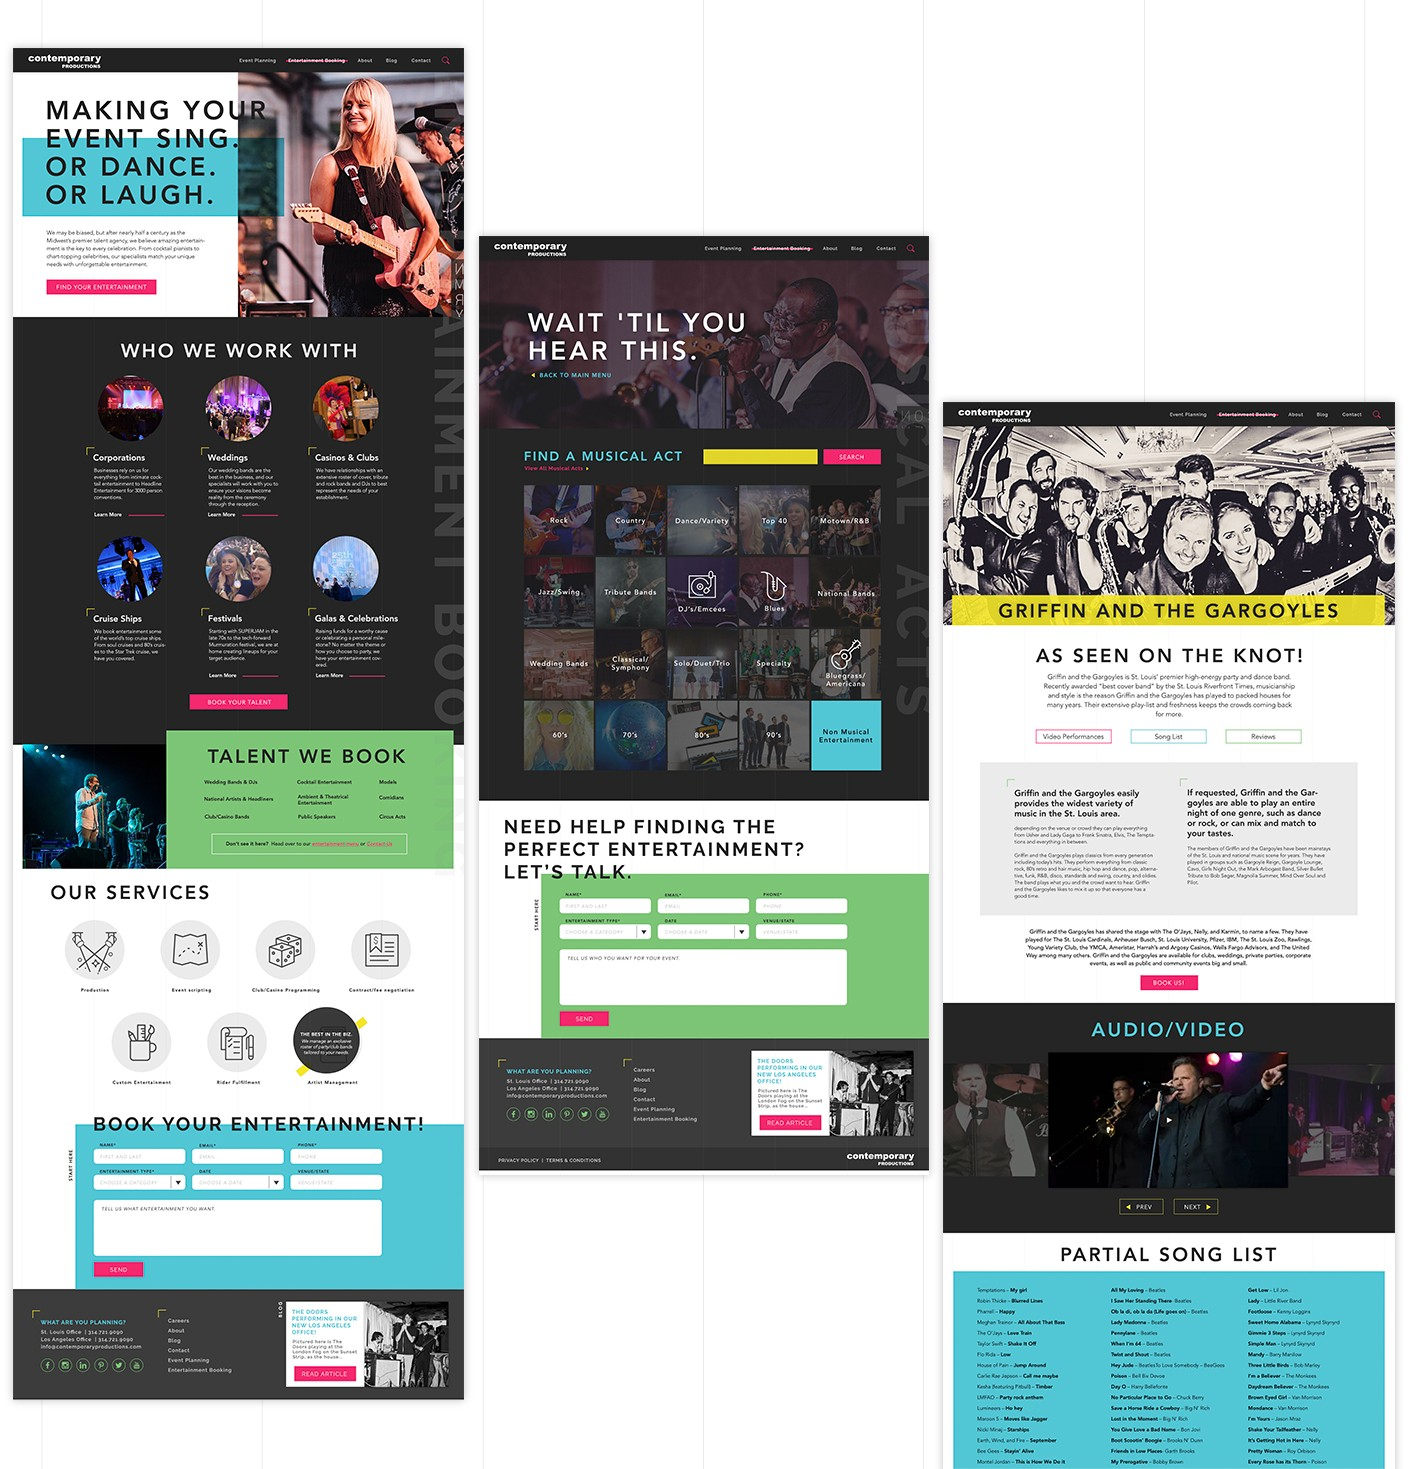 For this entertainment booking website design, we took inspiration from large entertainment and rock-and-roll publications. The resulting design features bold accent colors, prominent headlines, and imagery that shows the life of the party.